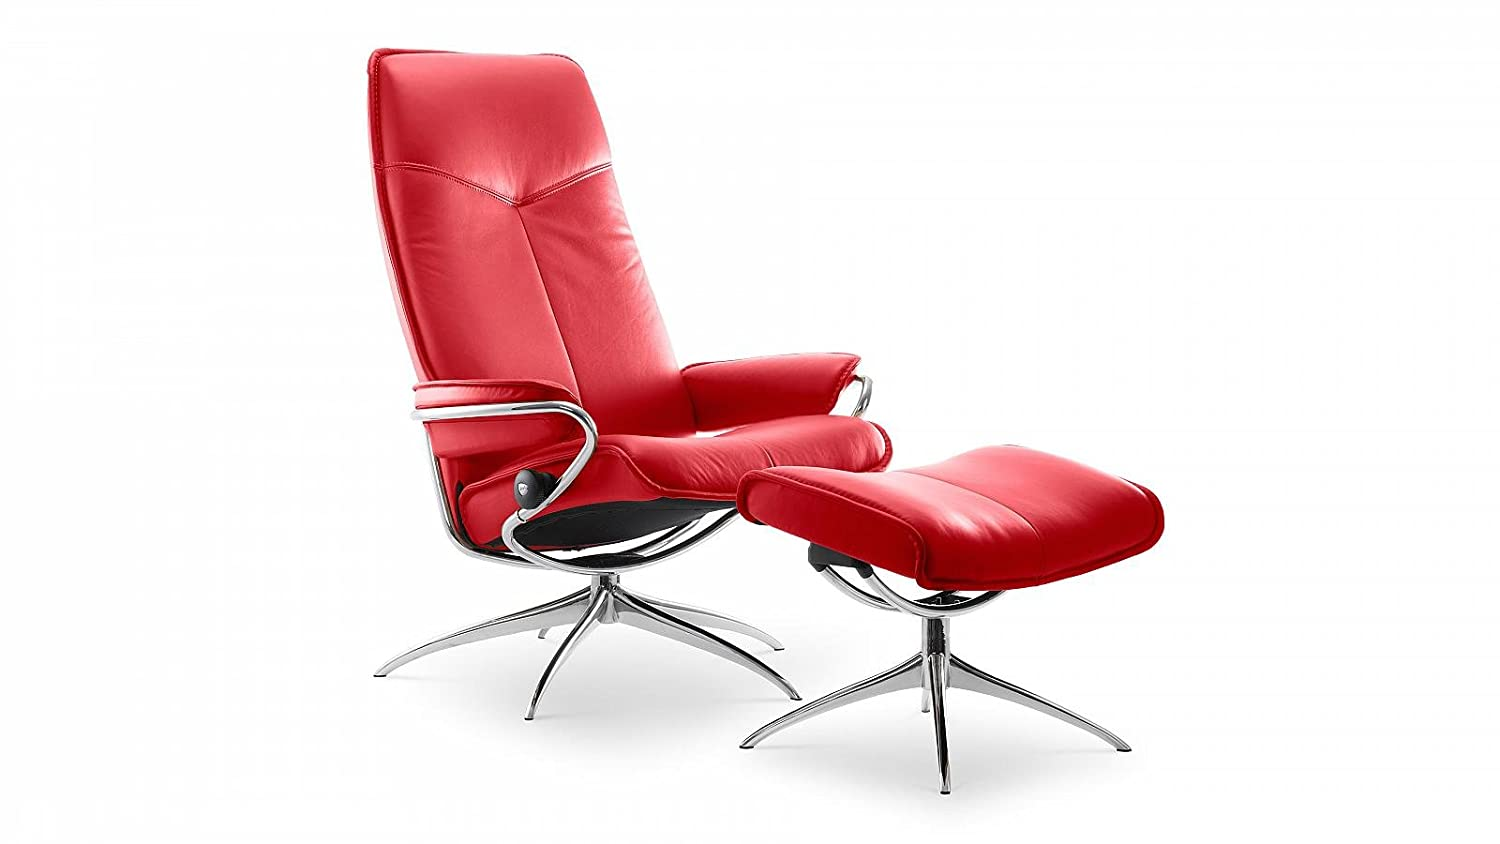 Stressless® City Sessel mit Hocker (M) High back Rot günstig günstig